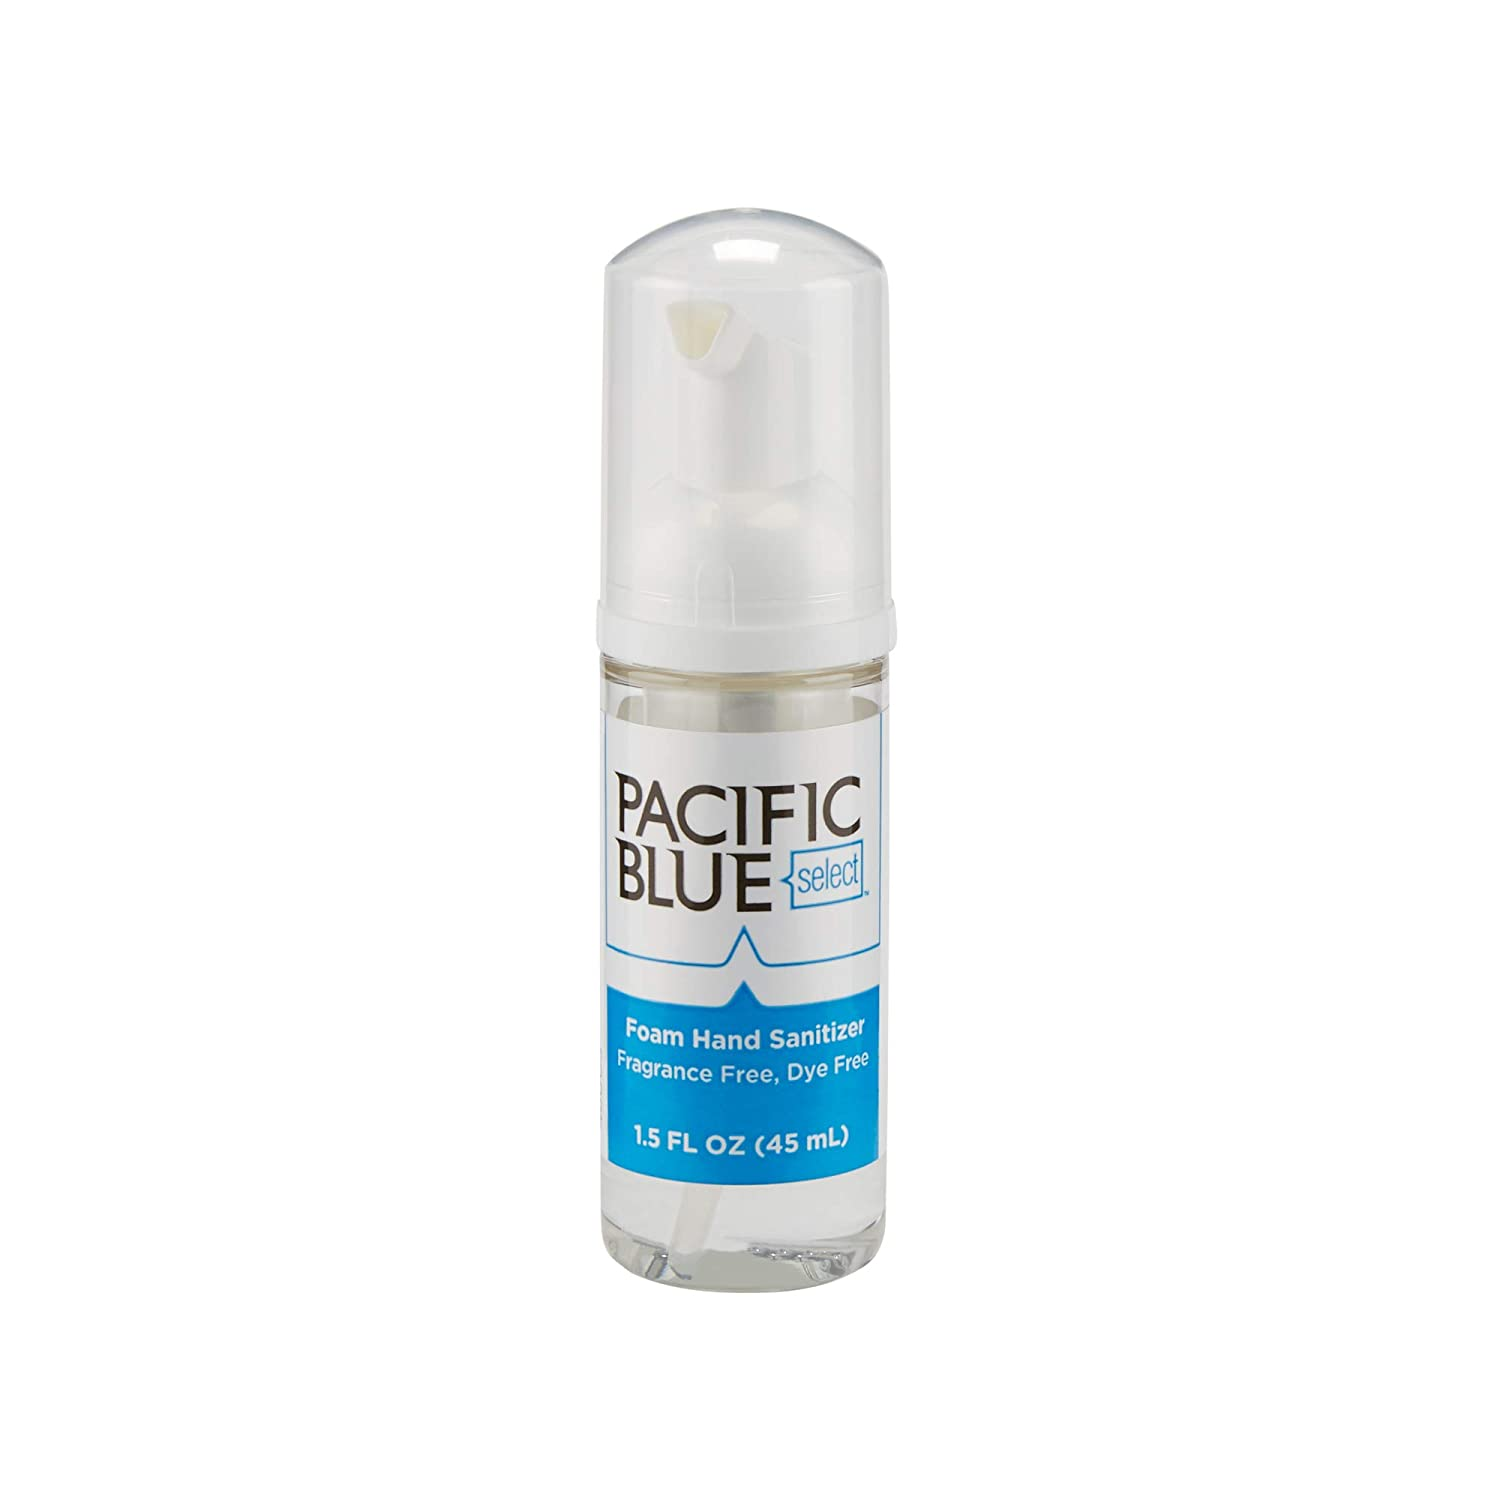 Pacific Ranking integrated 1st place Blue Select Personal Size Foam PRO GP Sanitizer by Ranking TOP6 Hand